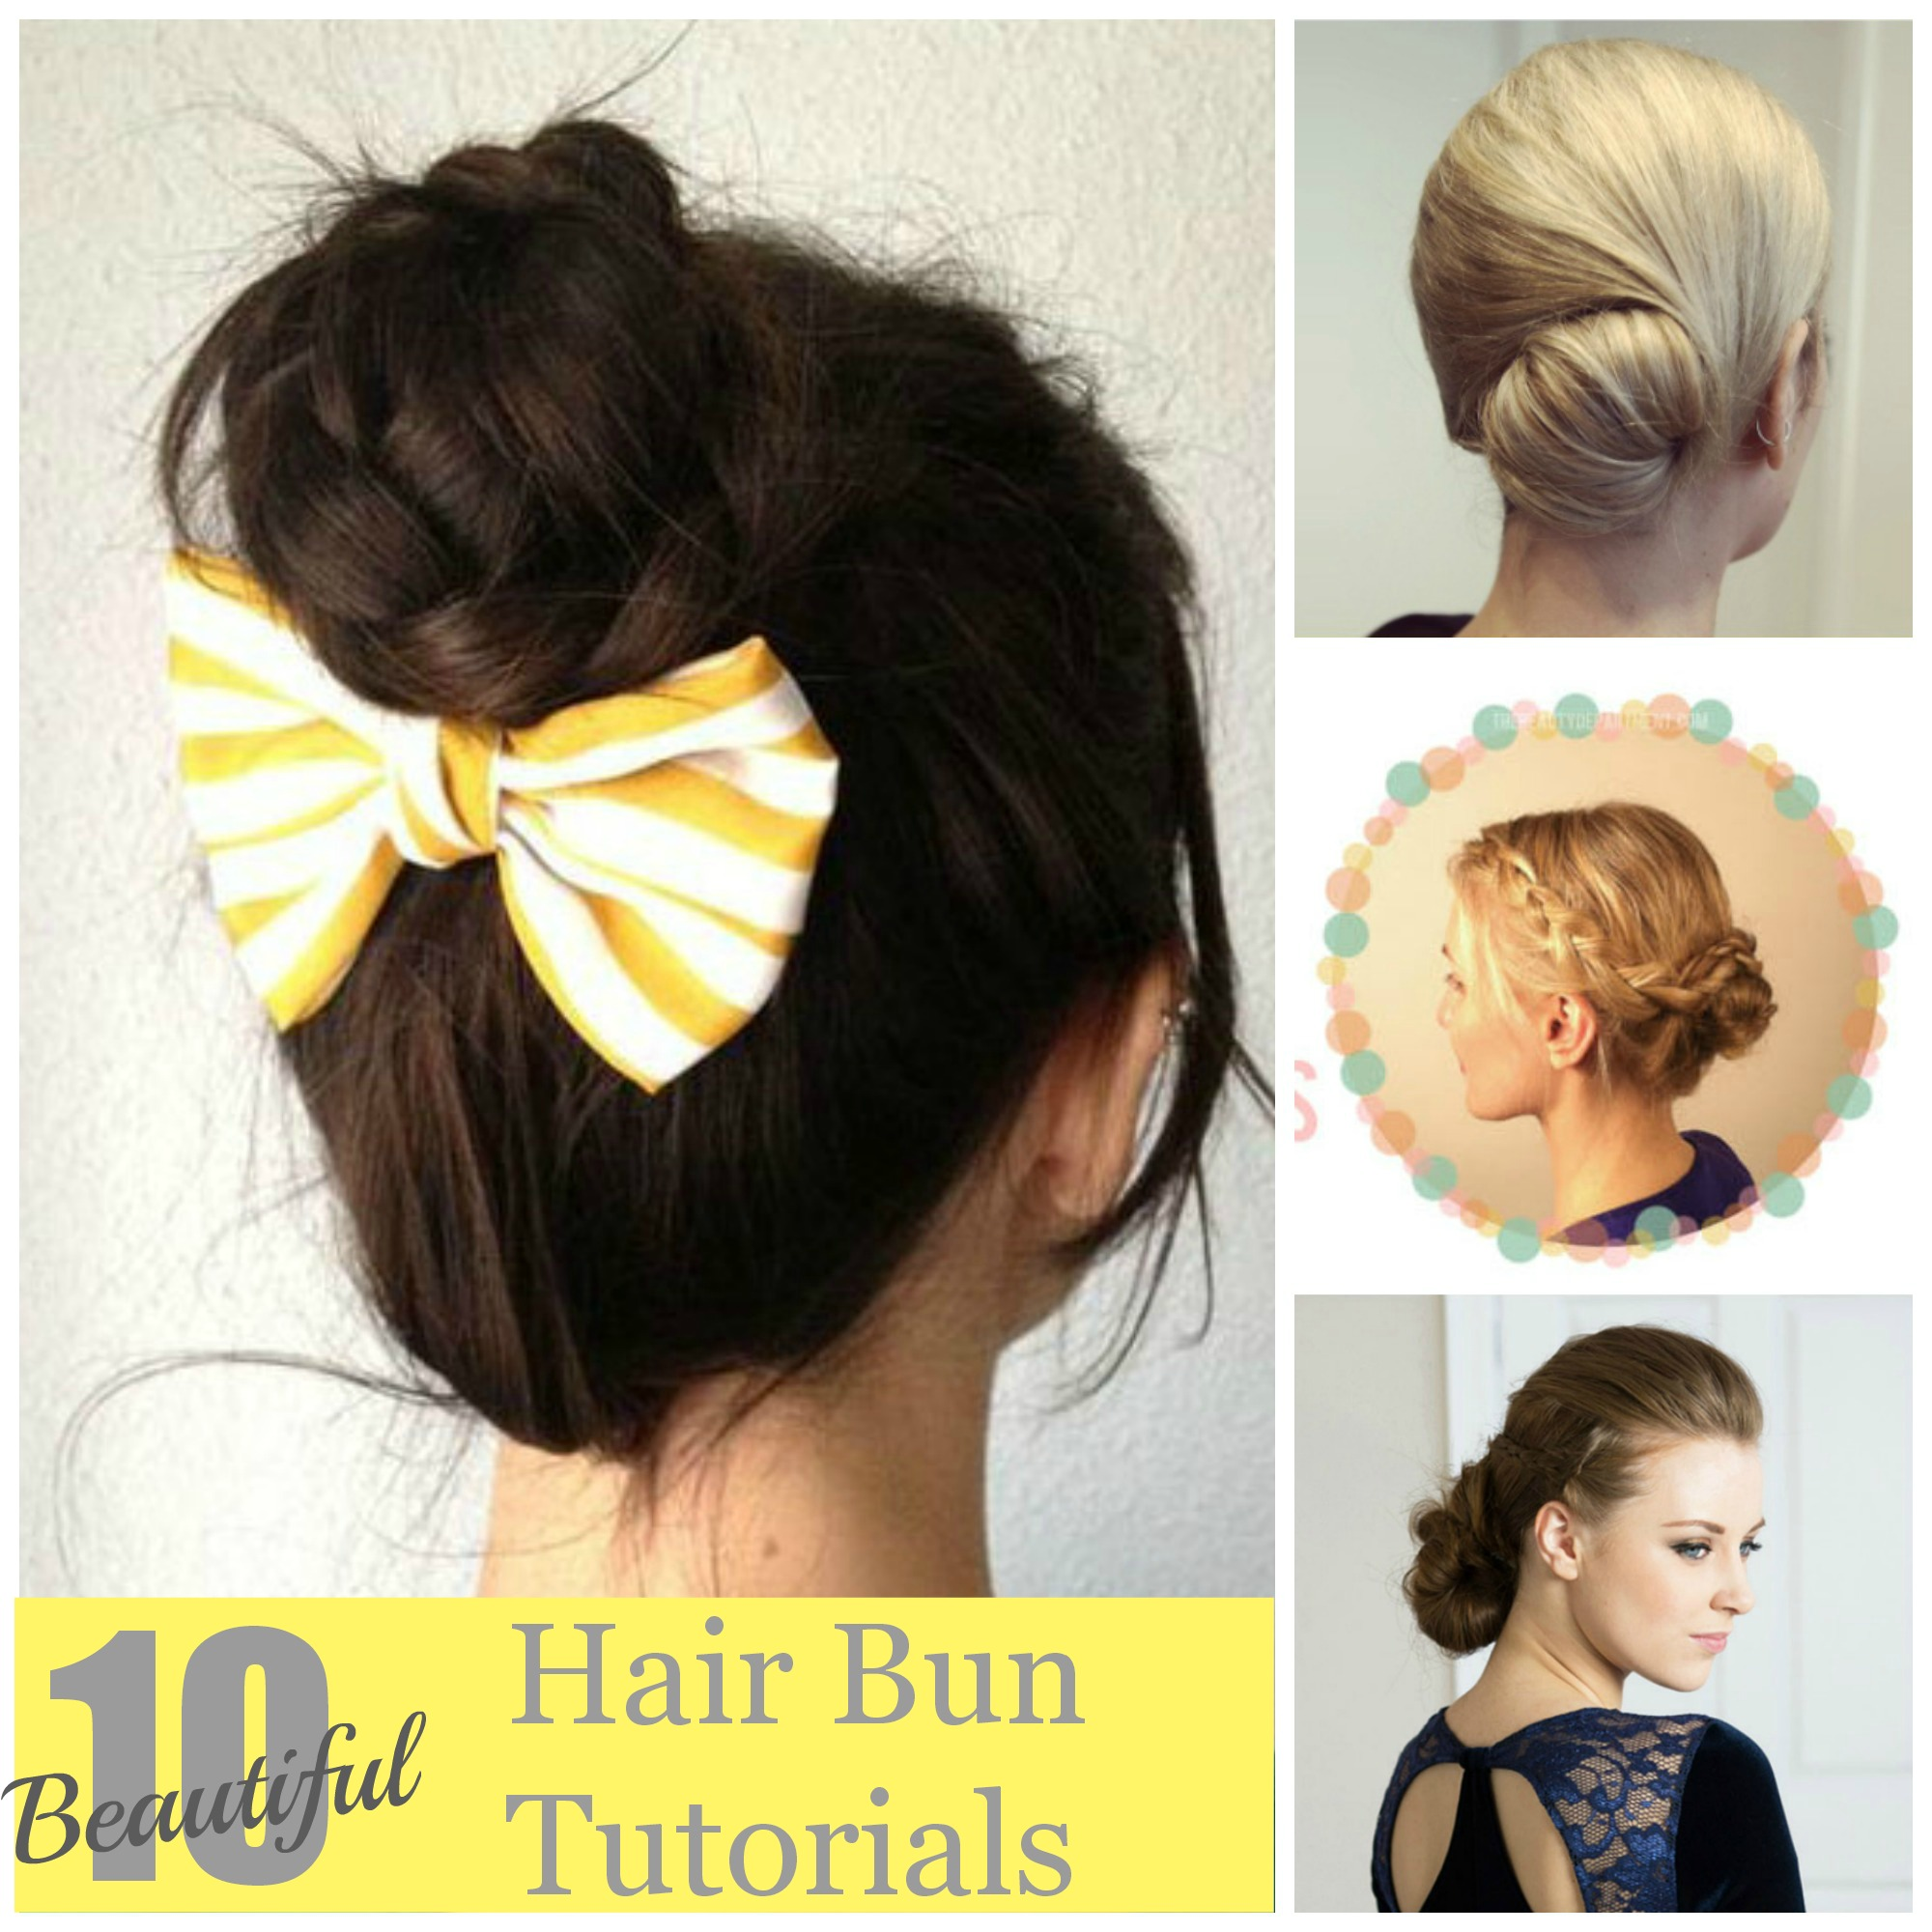 10 beautiful hair bun tutorials - artzycreations